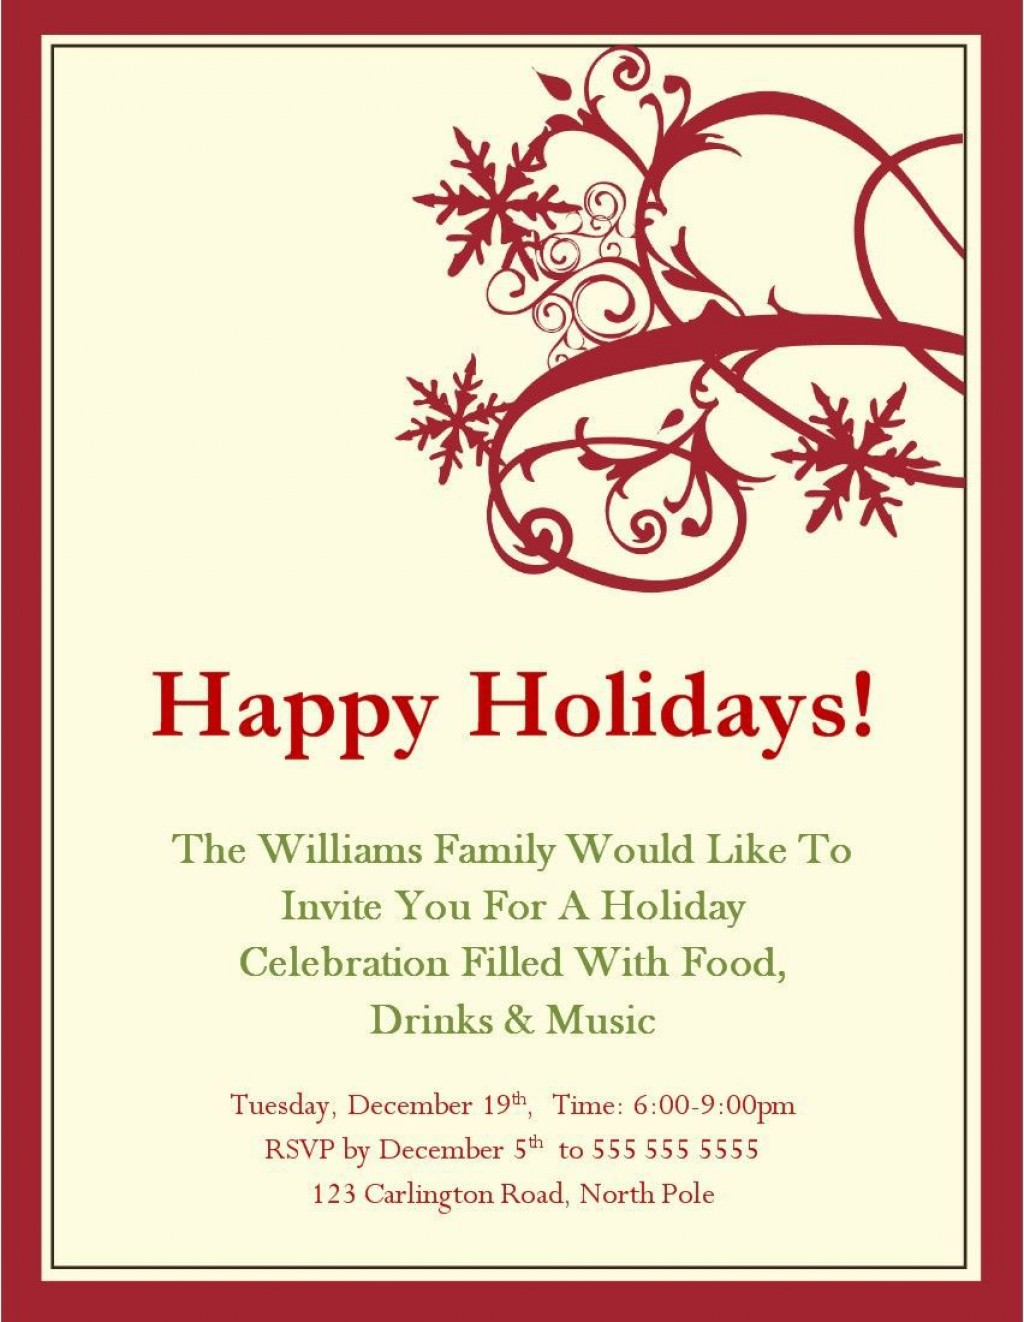 005 Astounding Free Holiday Party Flyer Template Word Photo Large